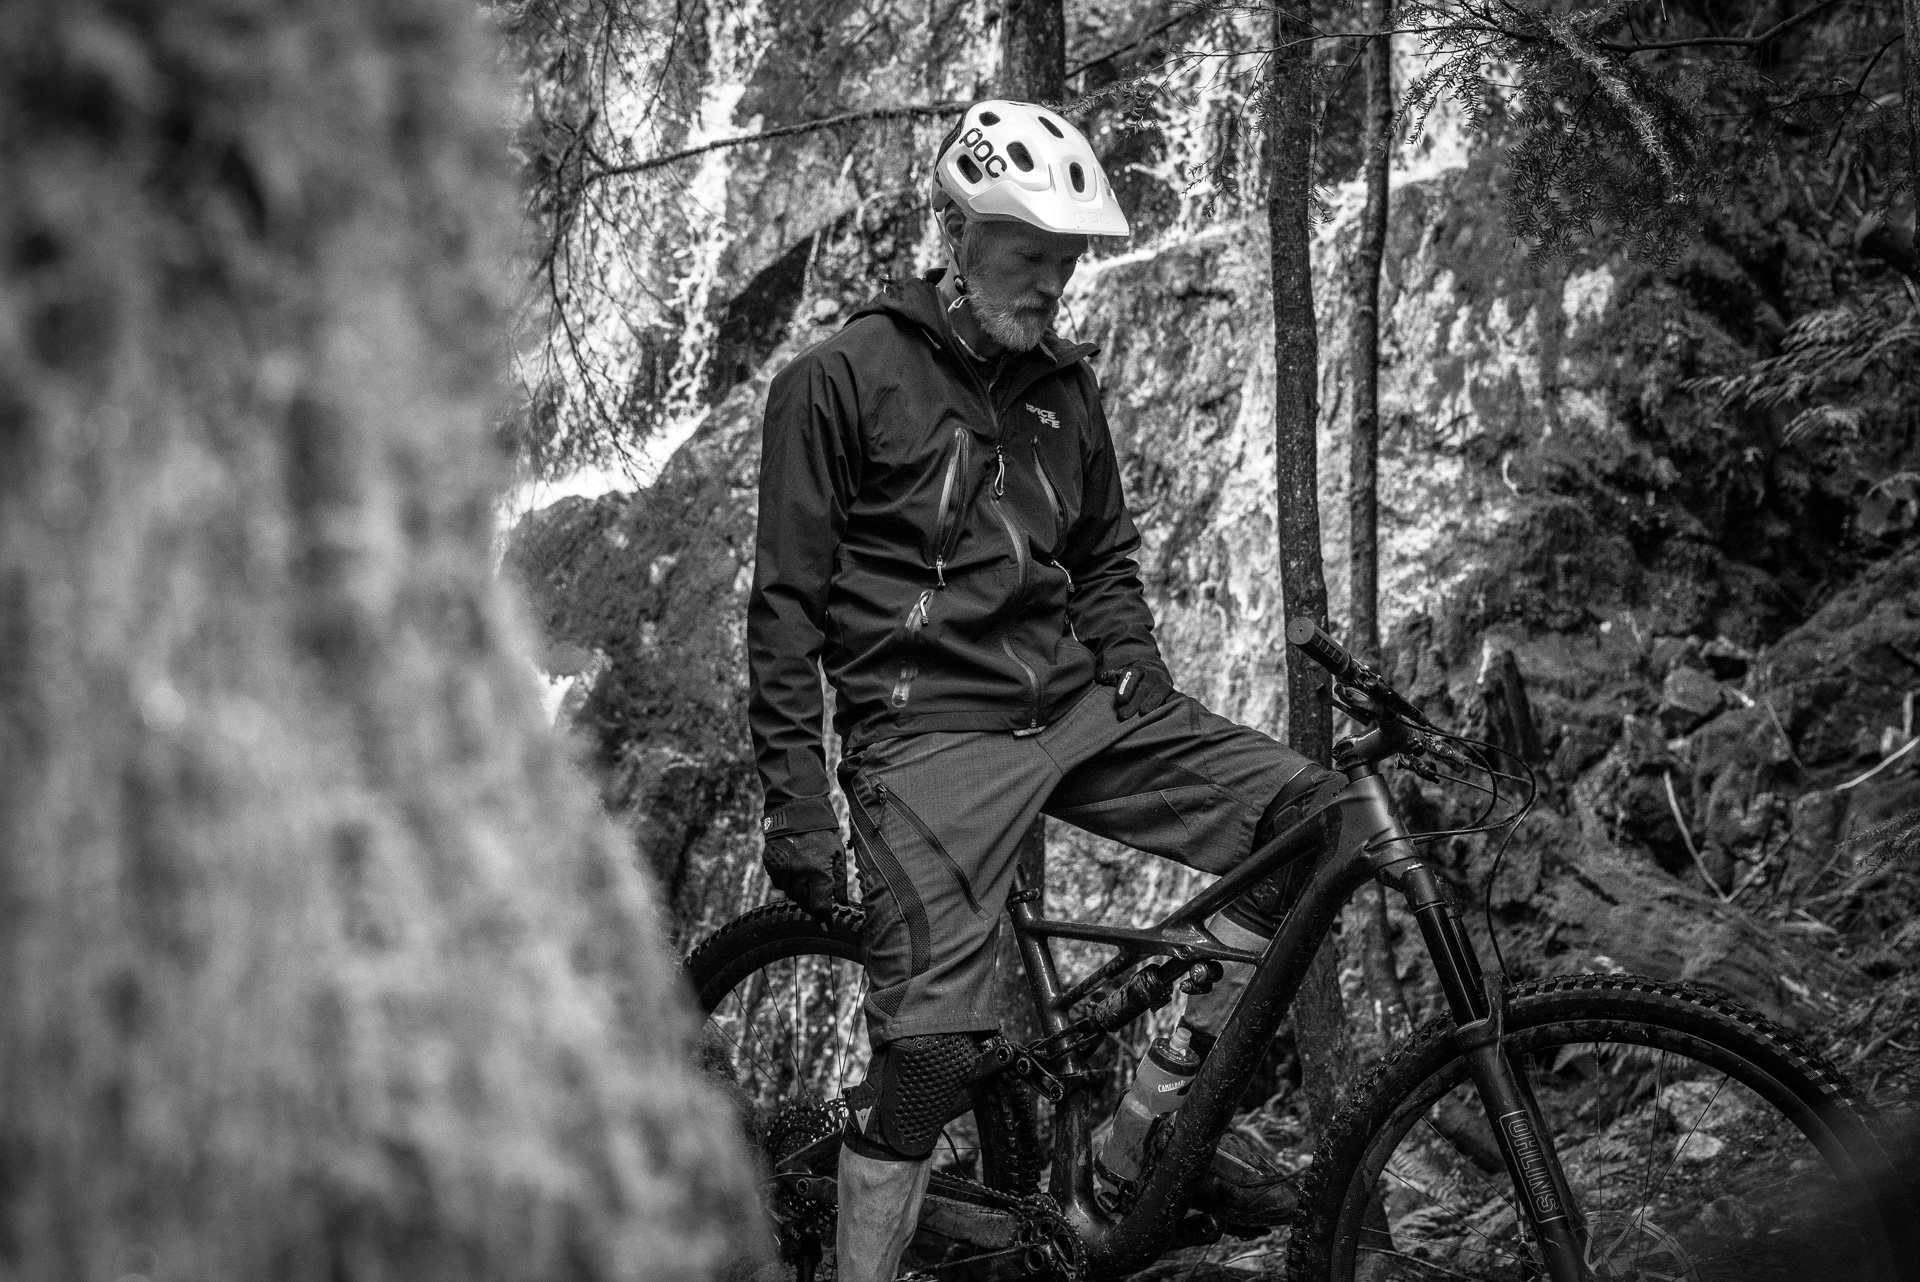 nsmb_2017_geareview_specialized_enduro29_PerrySchebel-7752.jpg